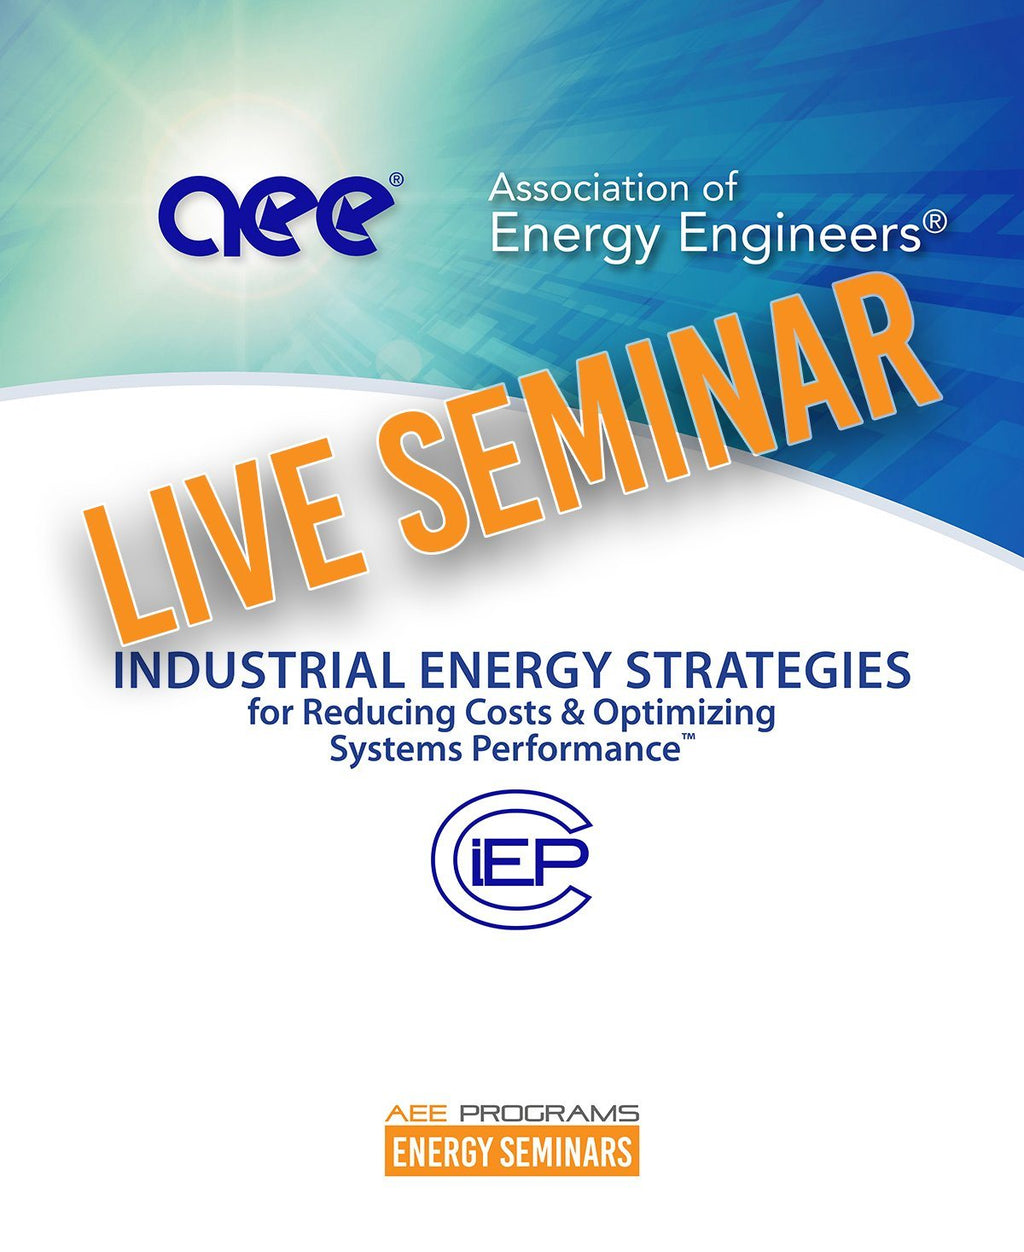 Industrial Energy Strategies For Reducing Costs & Optimizing Systems Performance™ - AEE Programs